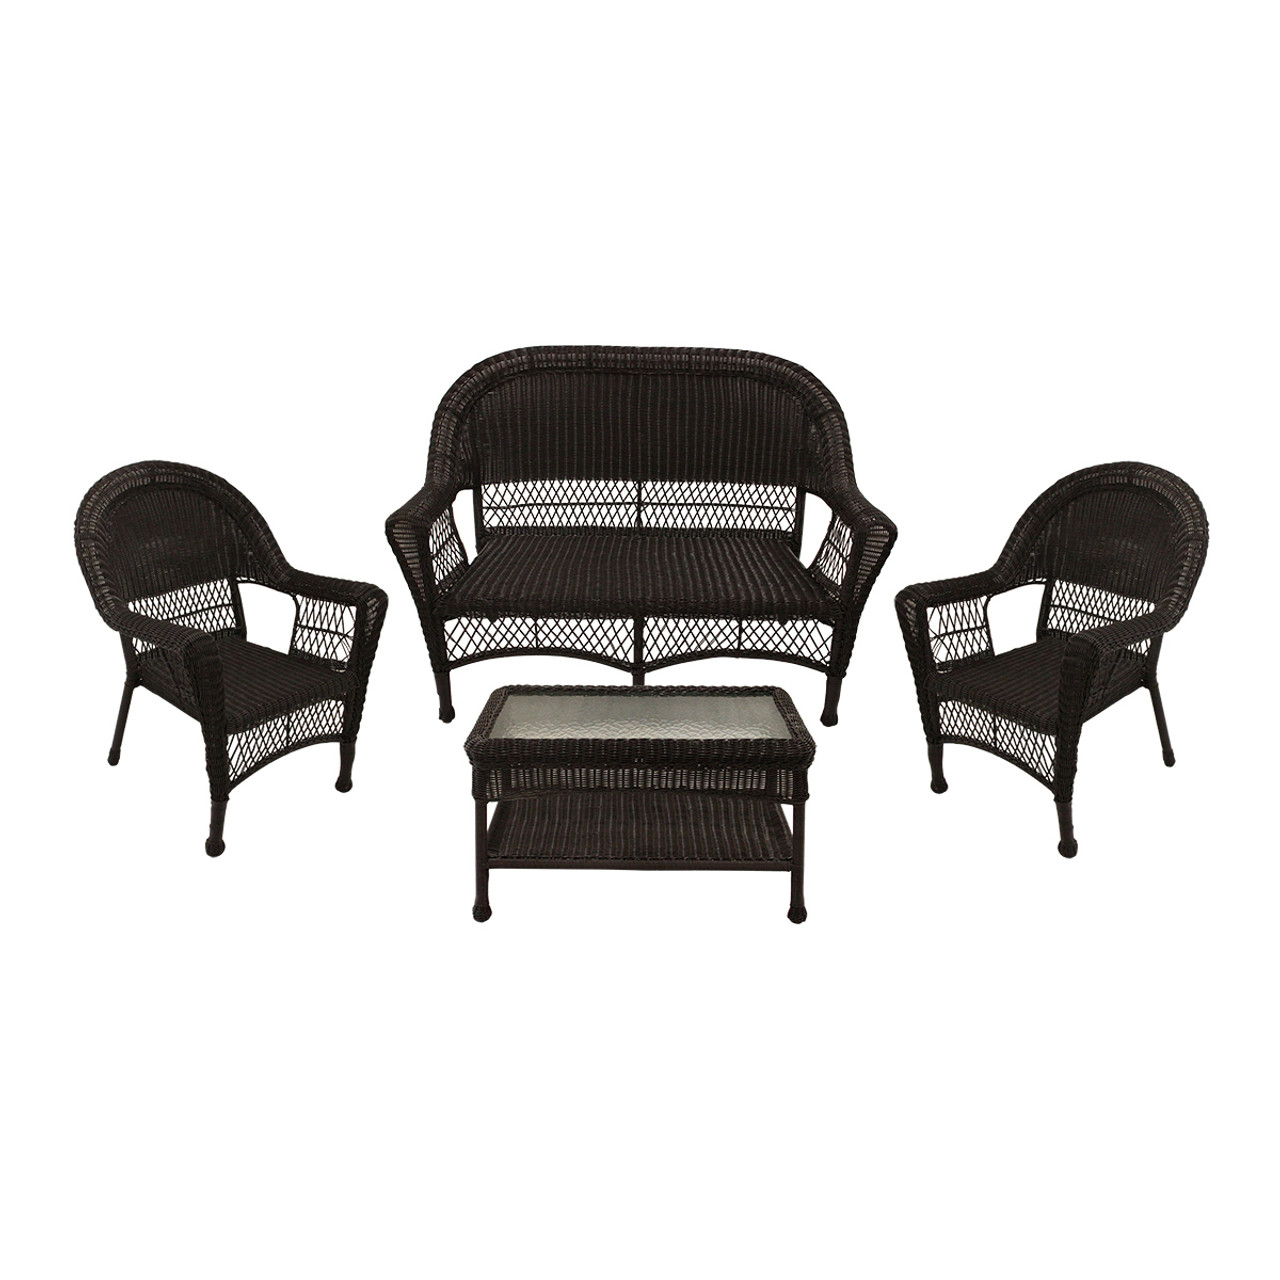 4-piece Brown Resin Wicker Patio Furniture Set - 2 Chairs